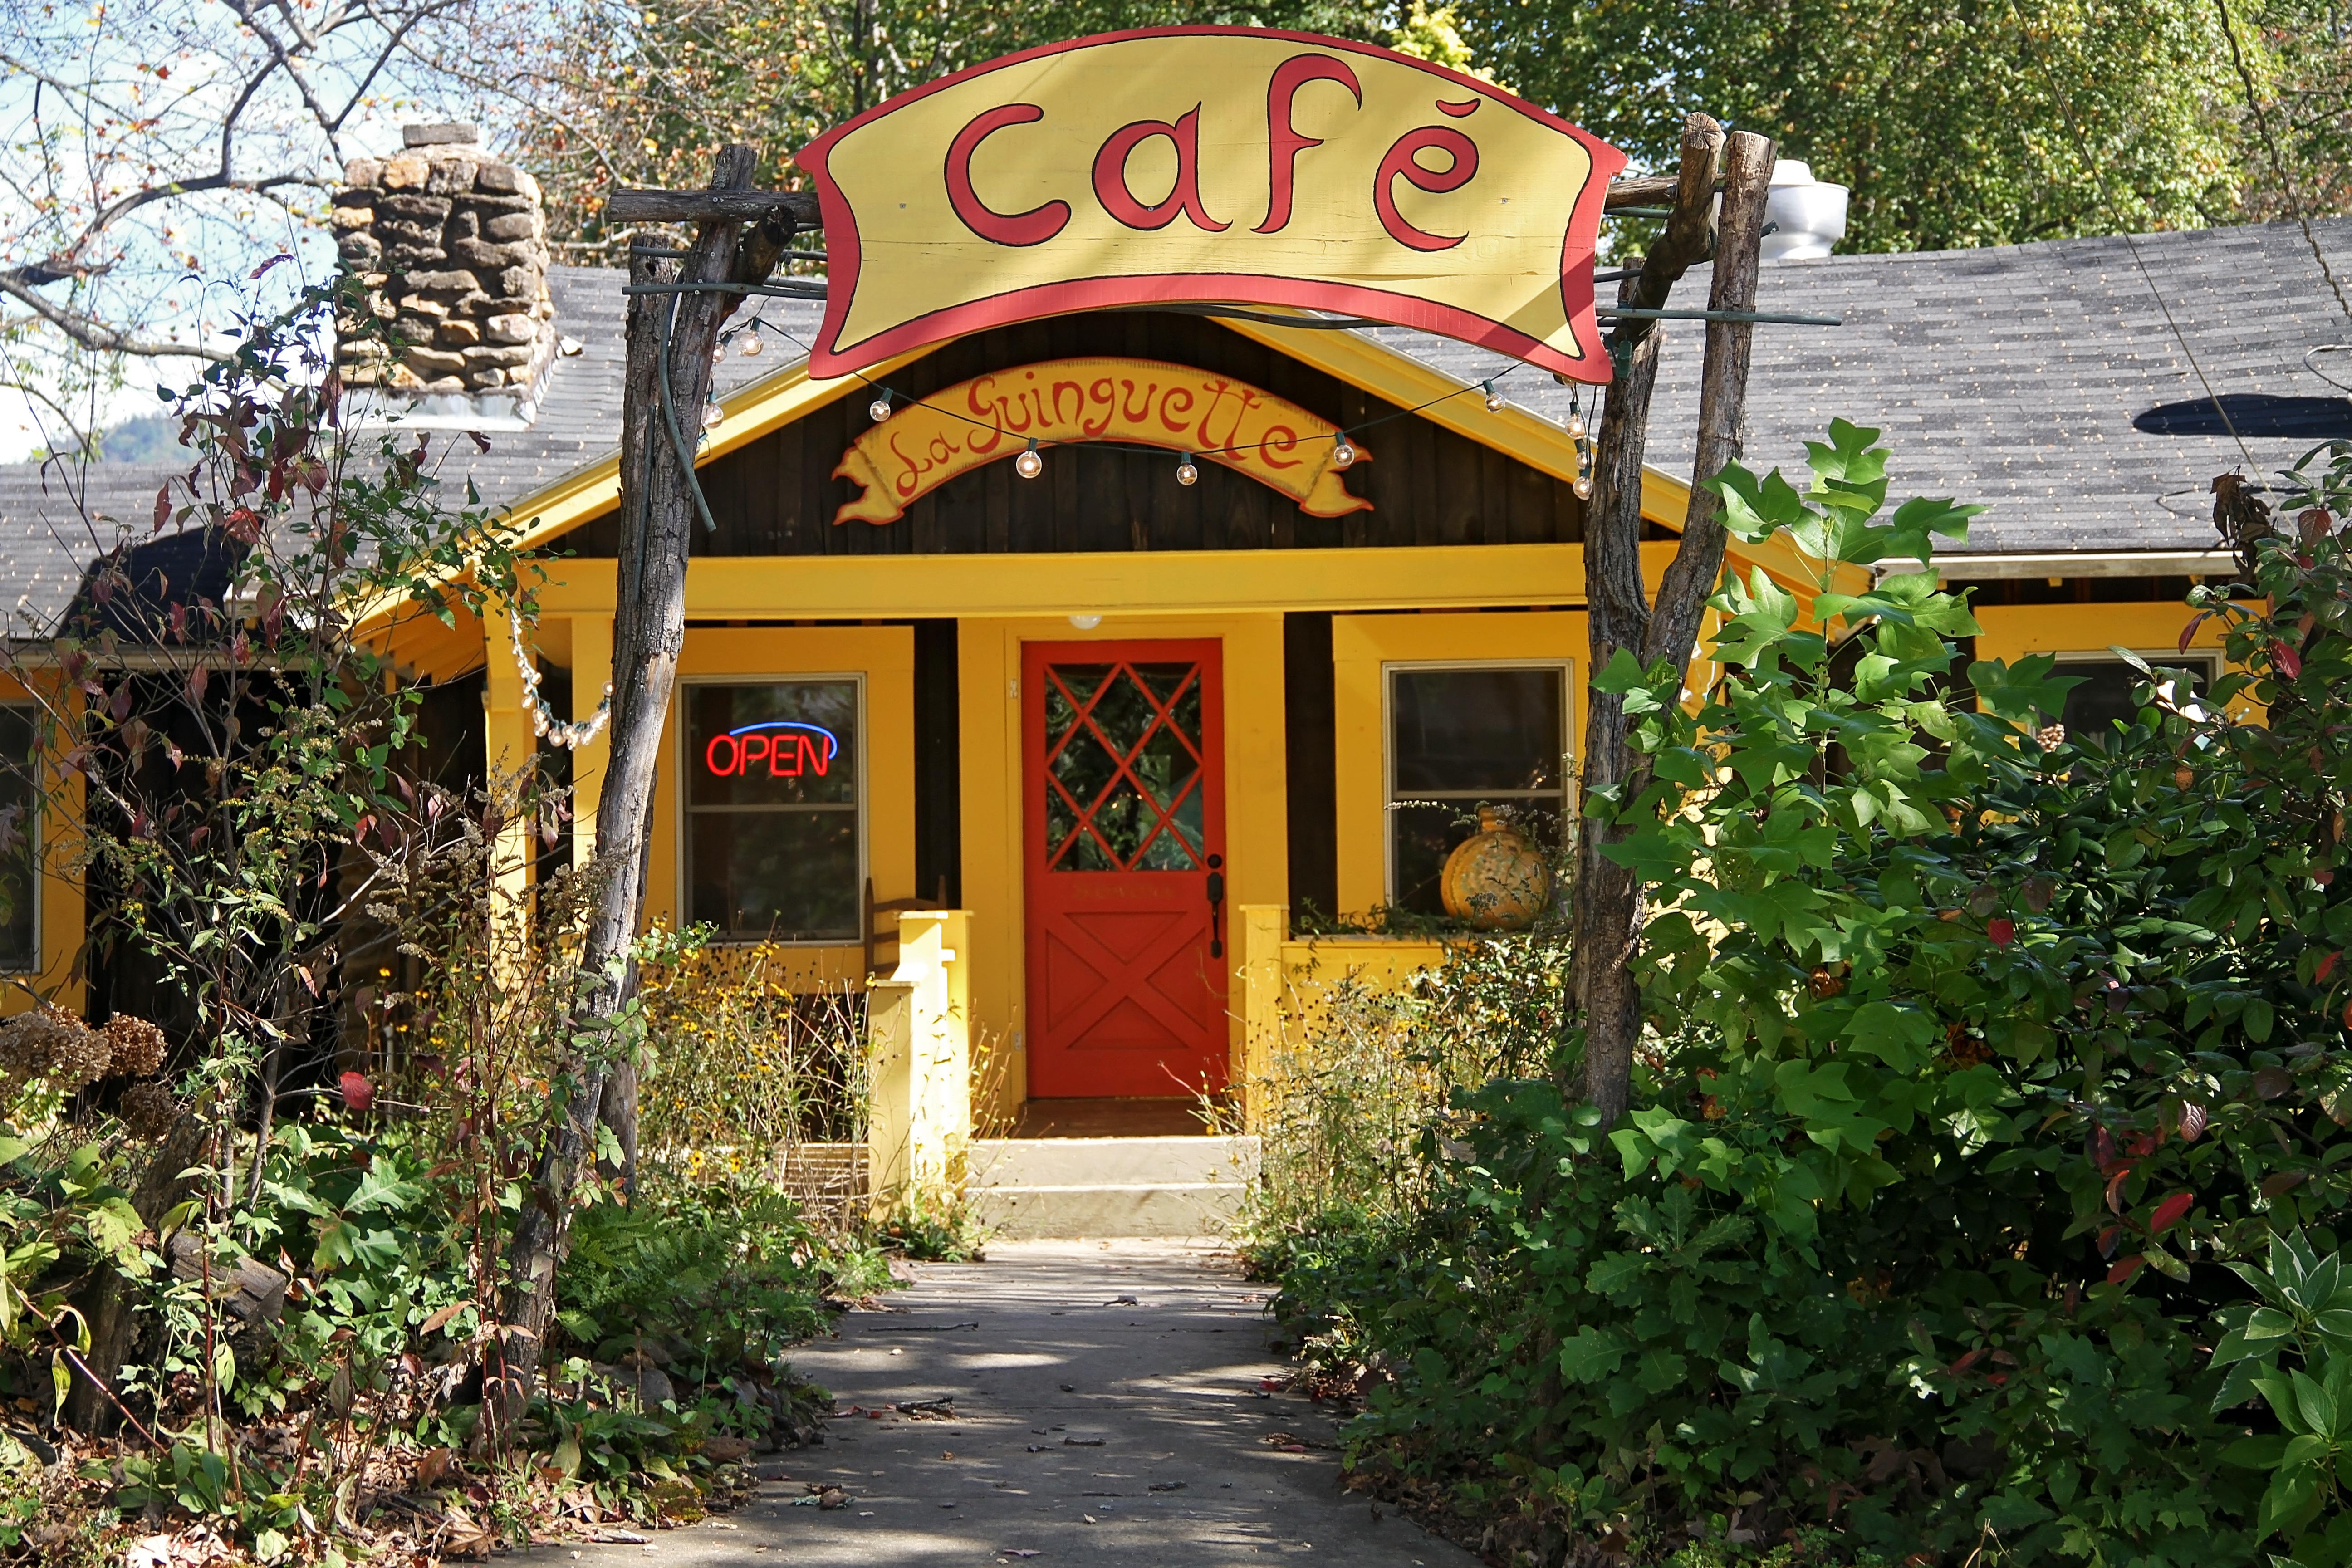 La Guinguette (pronounced 'la gang-get') serves French and Latin food in Black Mountain. (Photo credit: WLOS Staff)